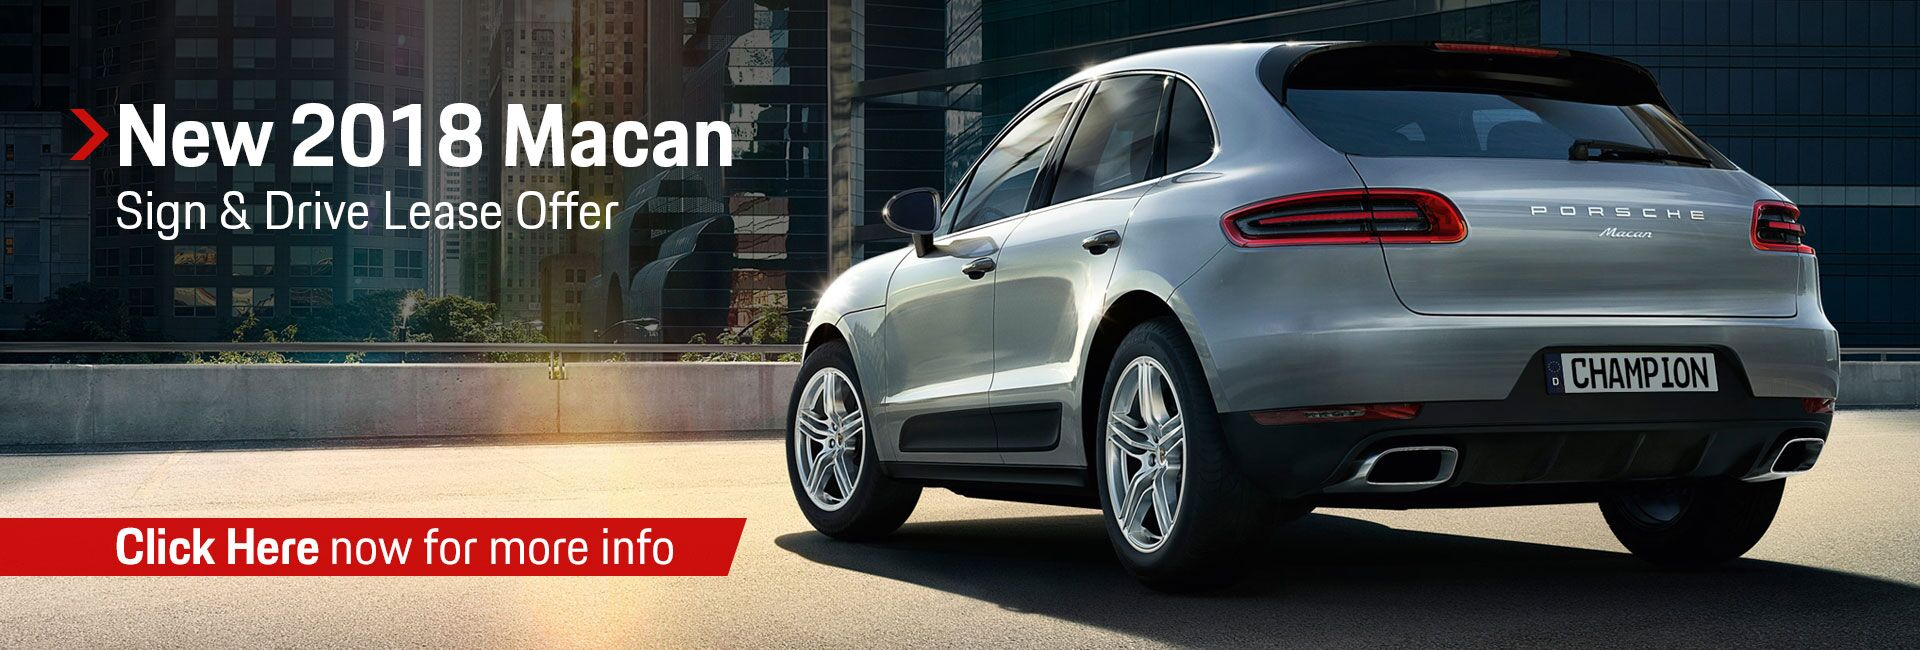 Macan Sign & Drive